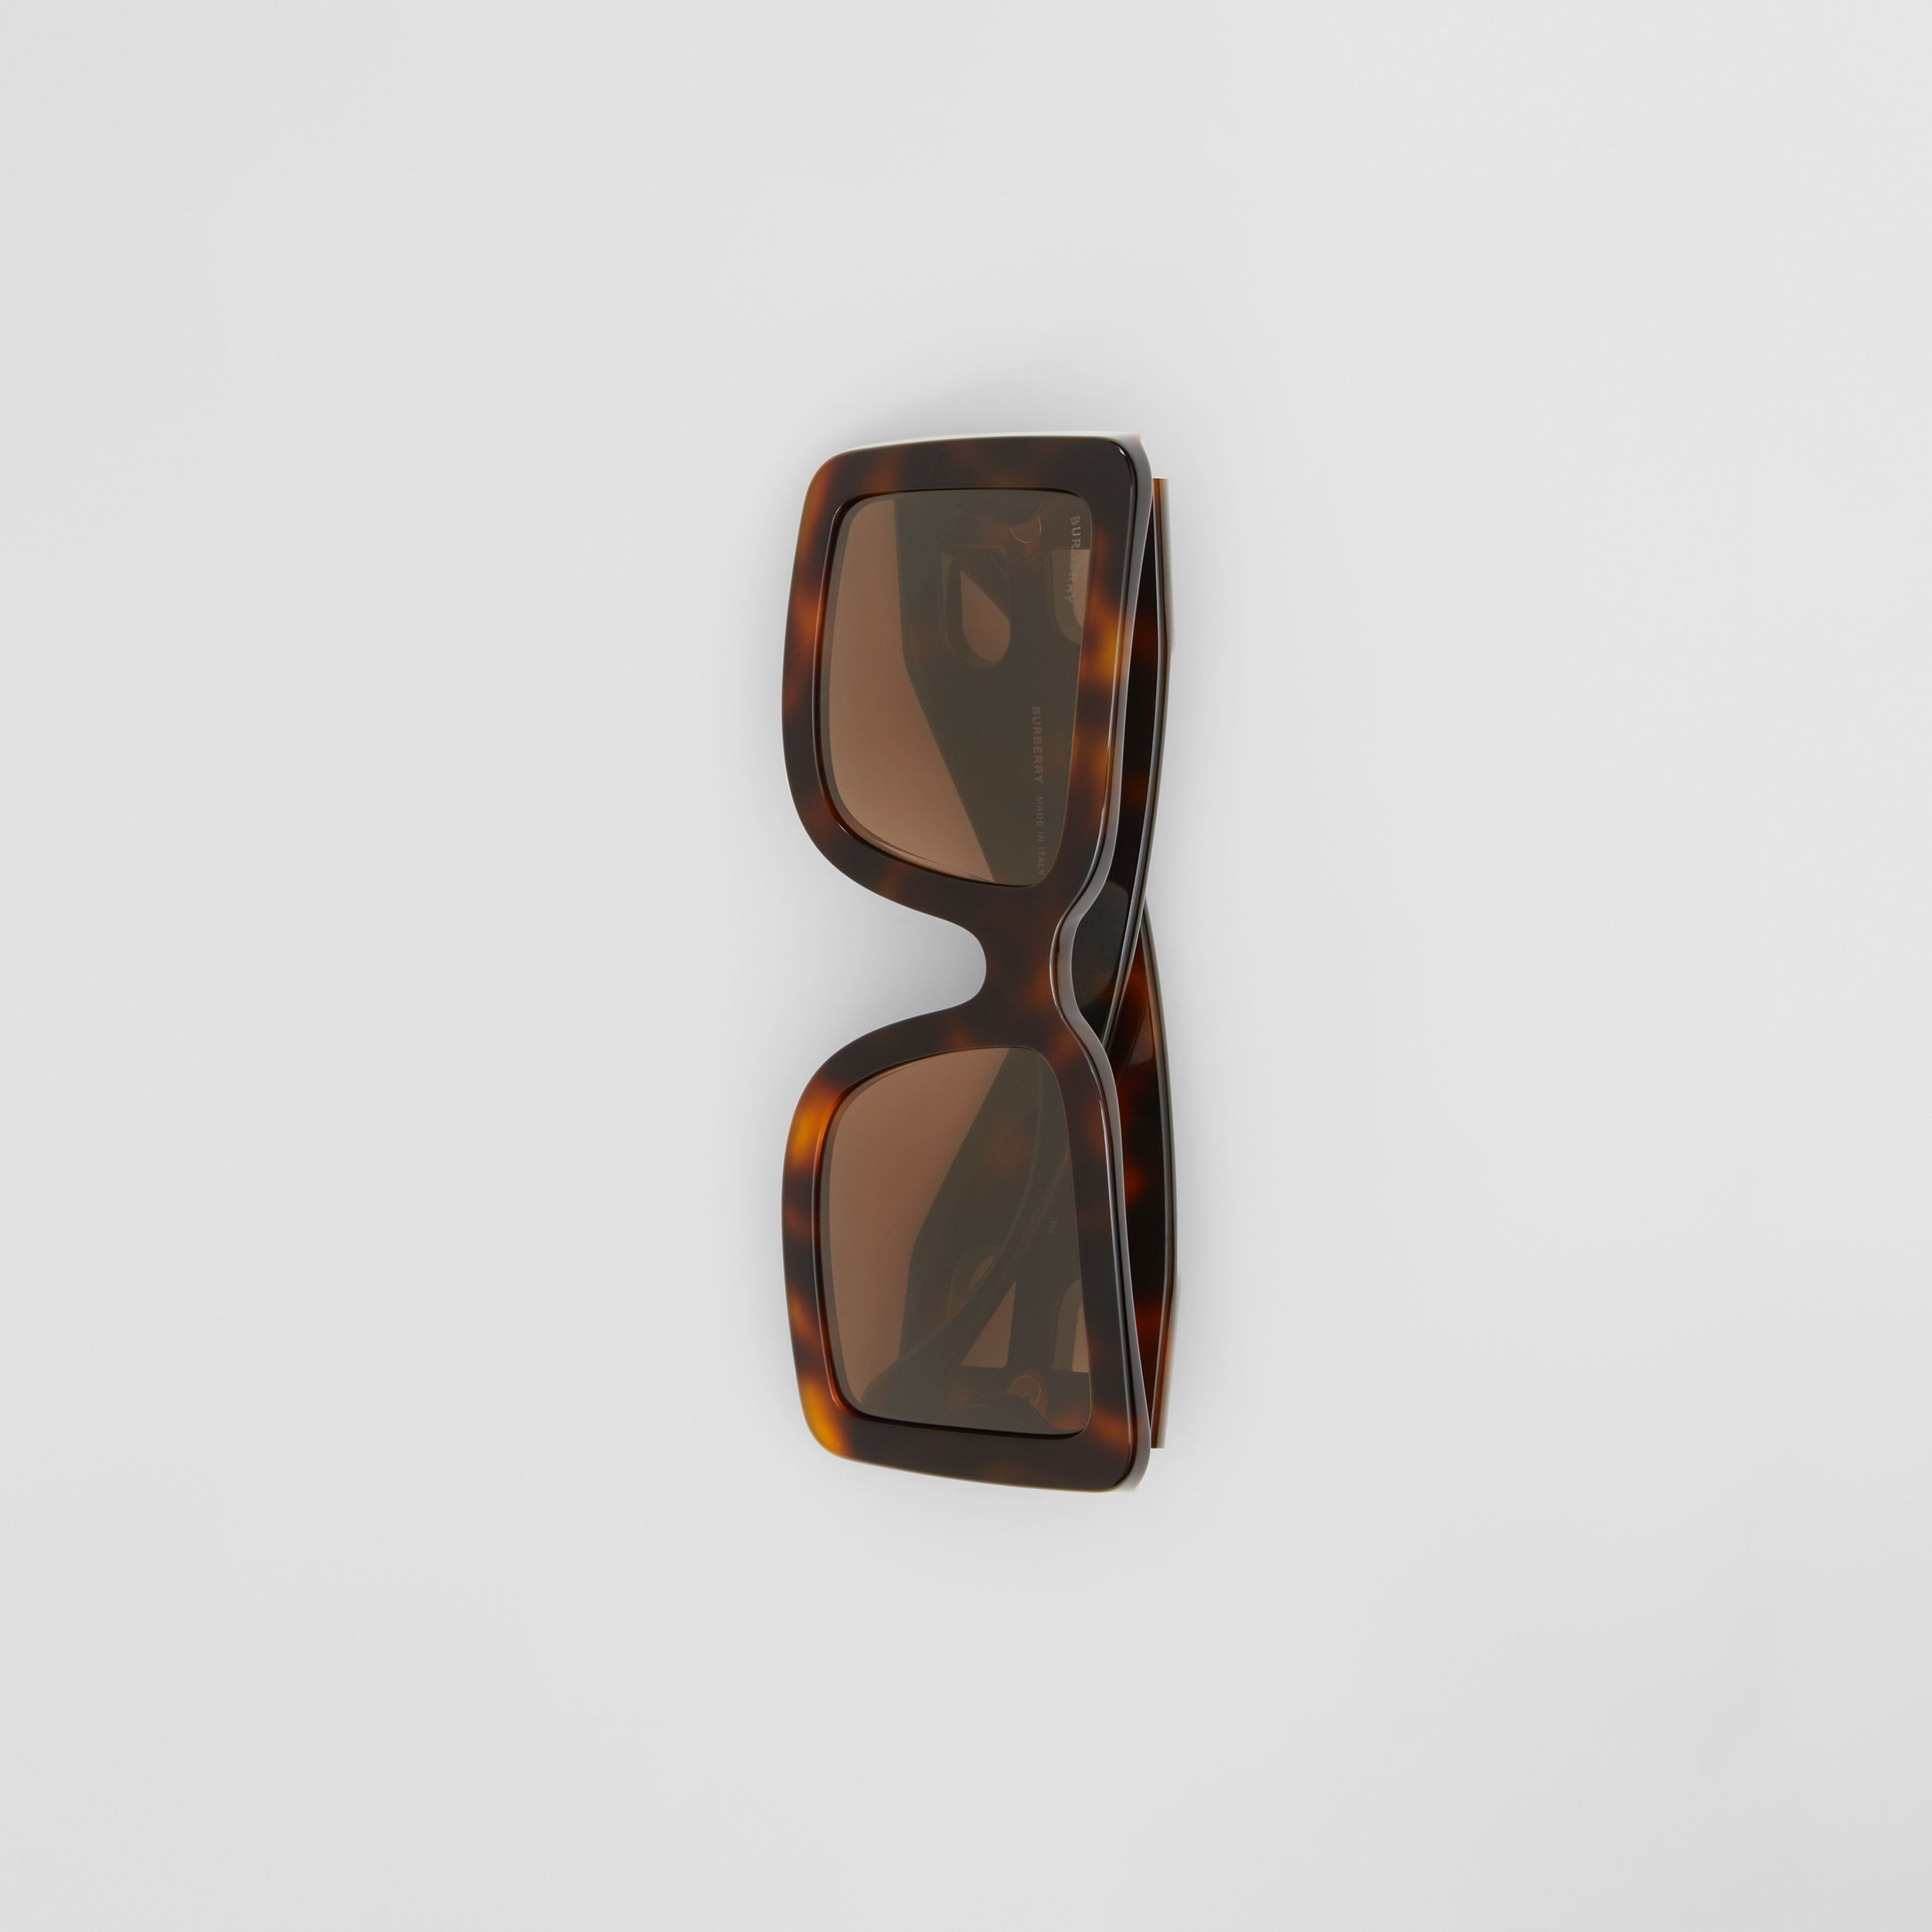 B Motif Square Frame Sunglasses in Tortoise Amber - Women | Burberry Hong Kong S.A.R. - 4